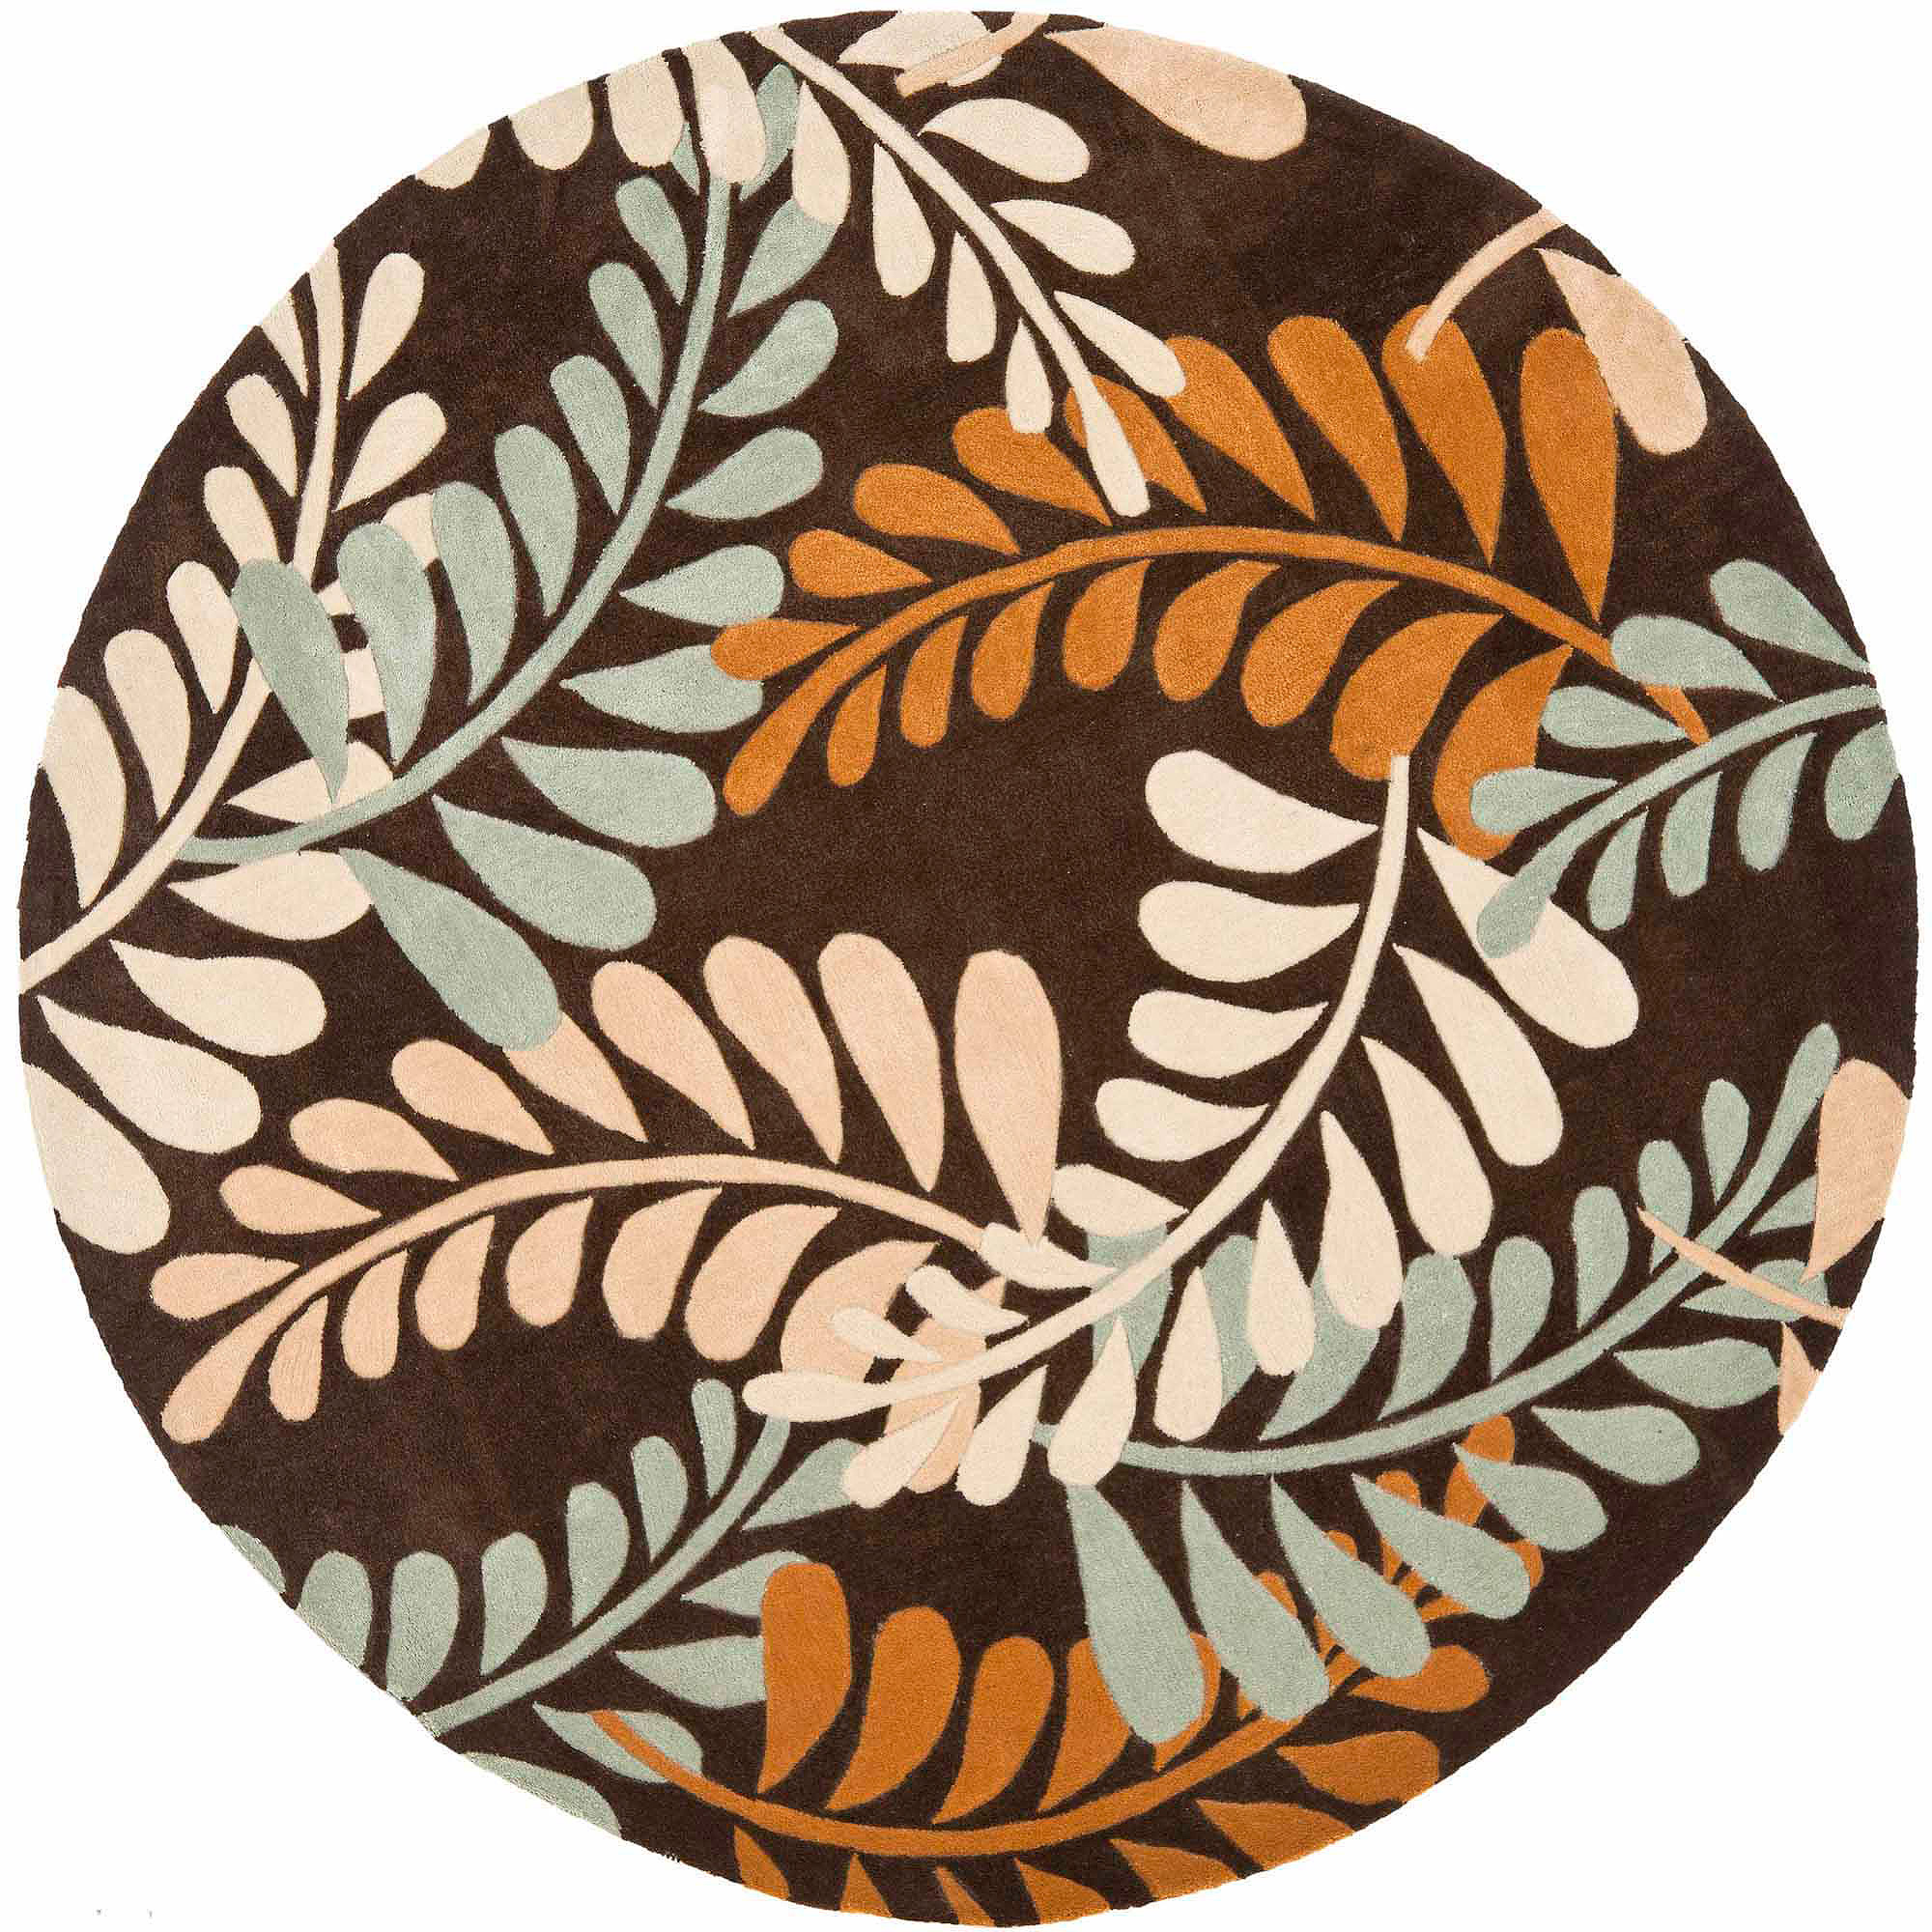 Safavieh Modern Art Iquera Hand-Tufted Area Rug, Brown/Multi